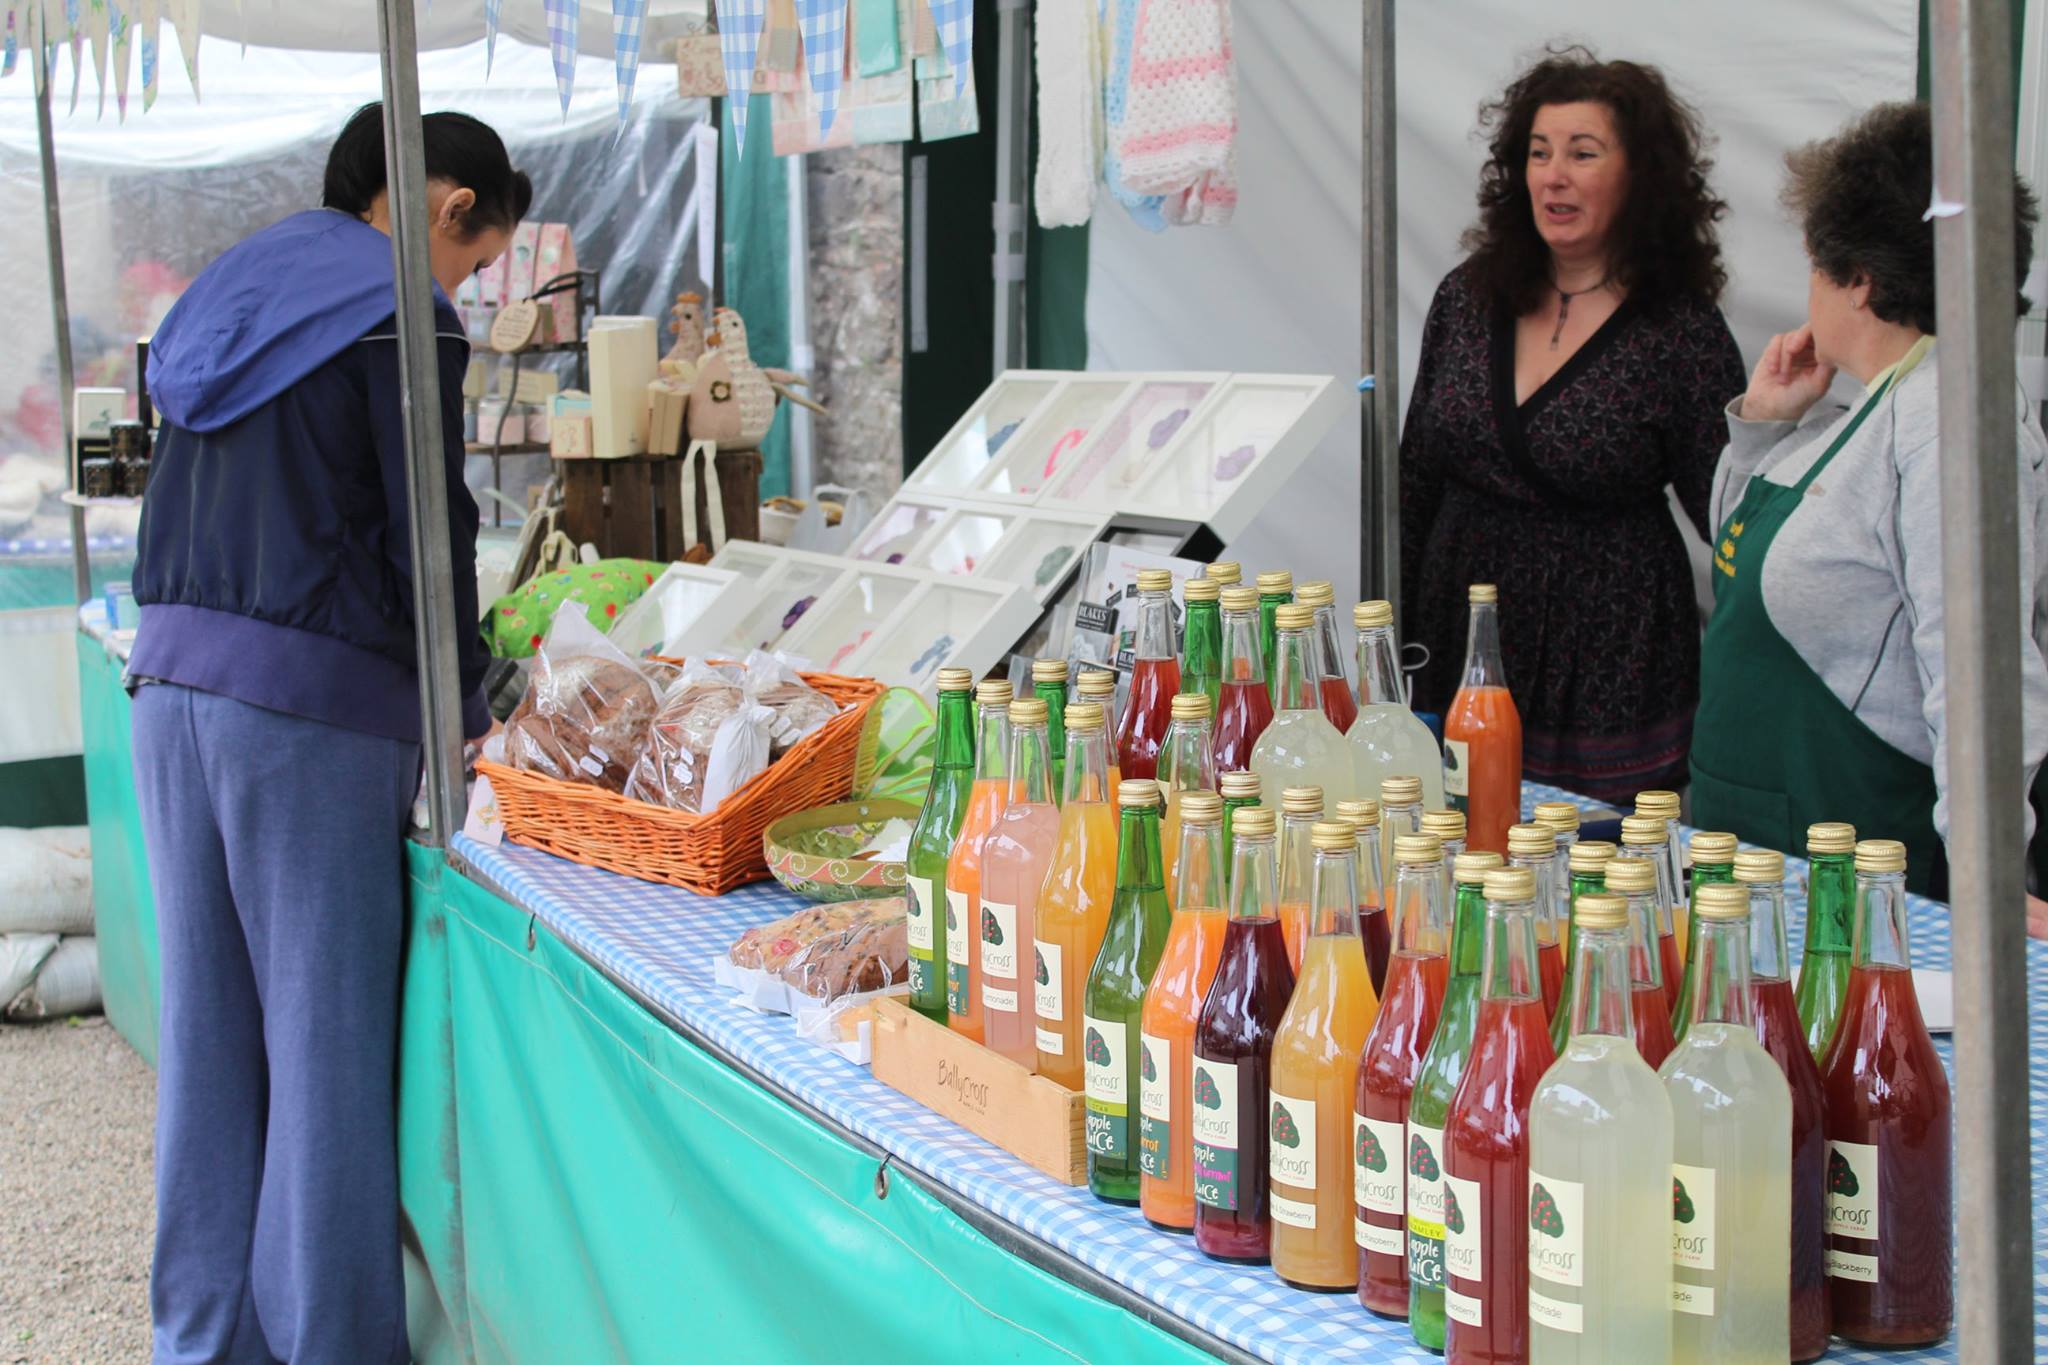 Some of our lovely stall holders, Boyle Courtyard Market, County Roscommon.